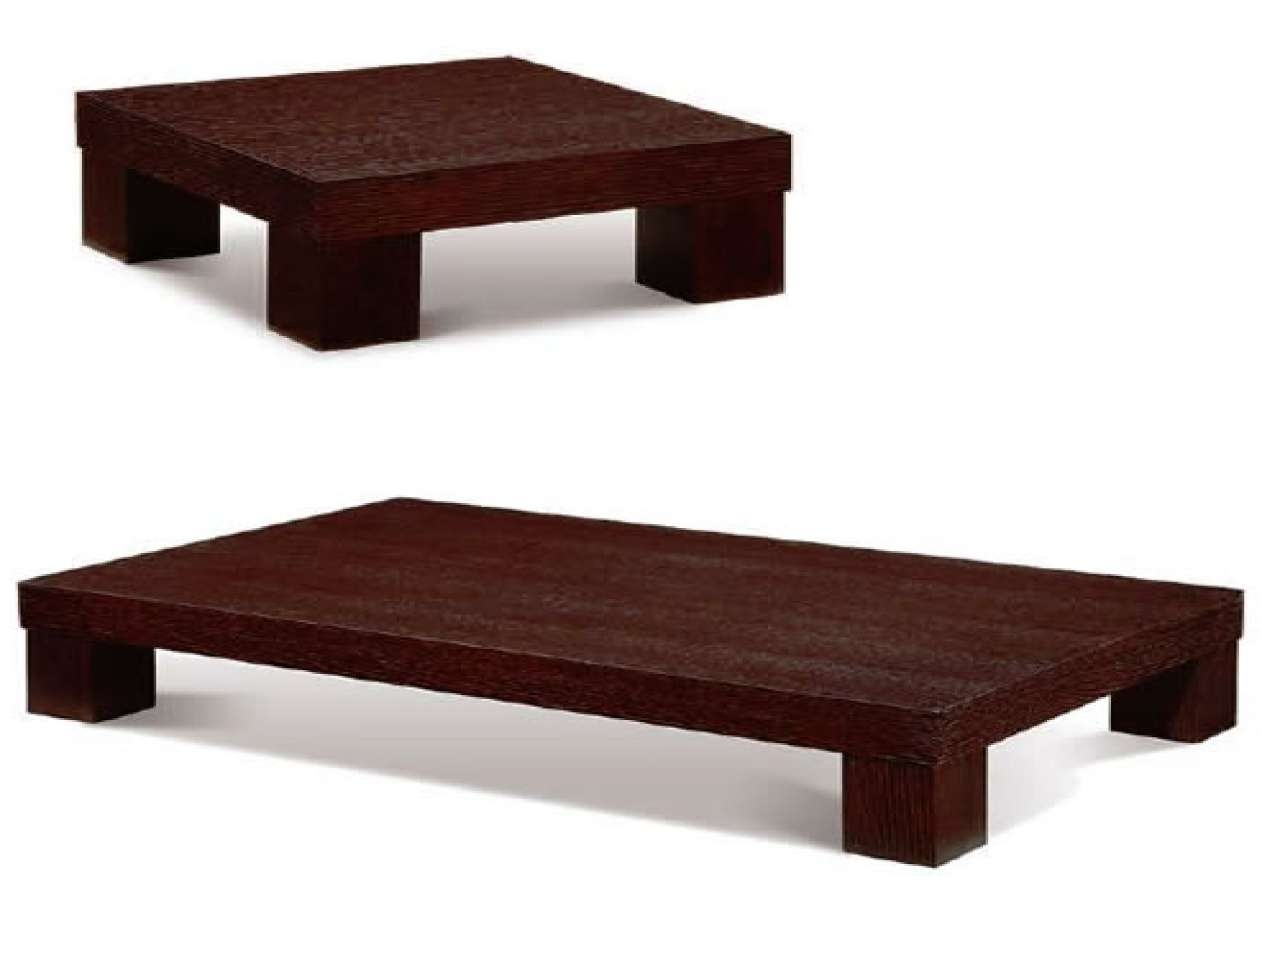 Ultra Low Profile Coffee Table • Coffee Table Design With Latest Tokyo Coffee Tables (View 18 of 20)